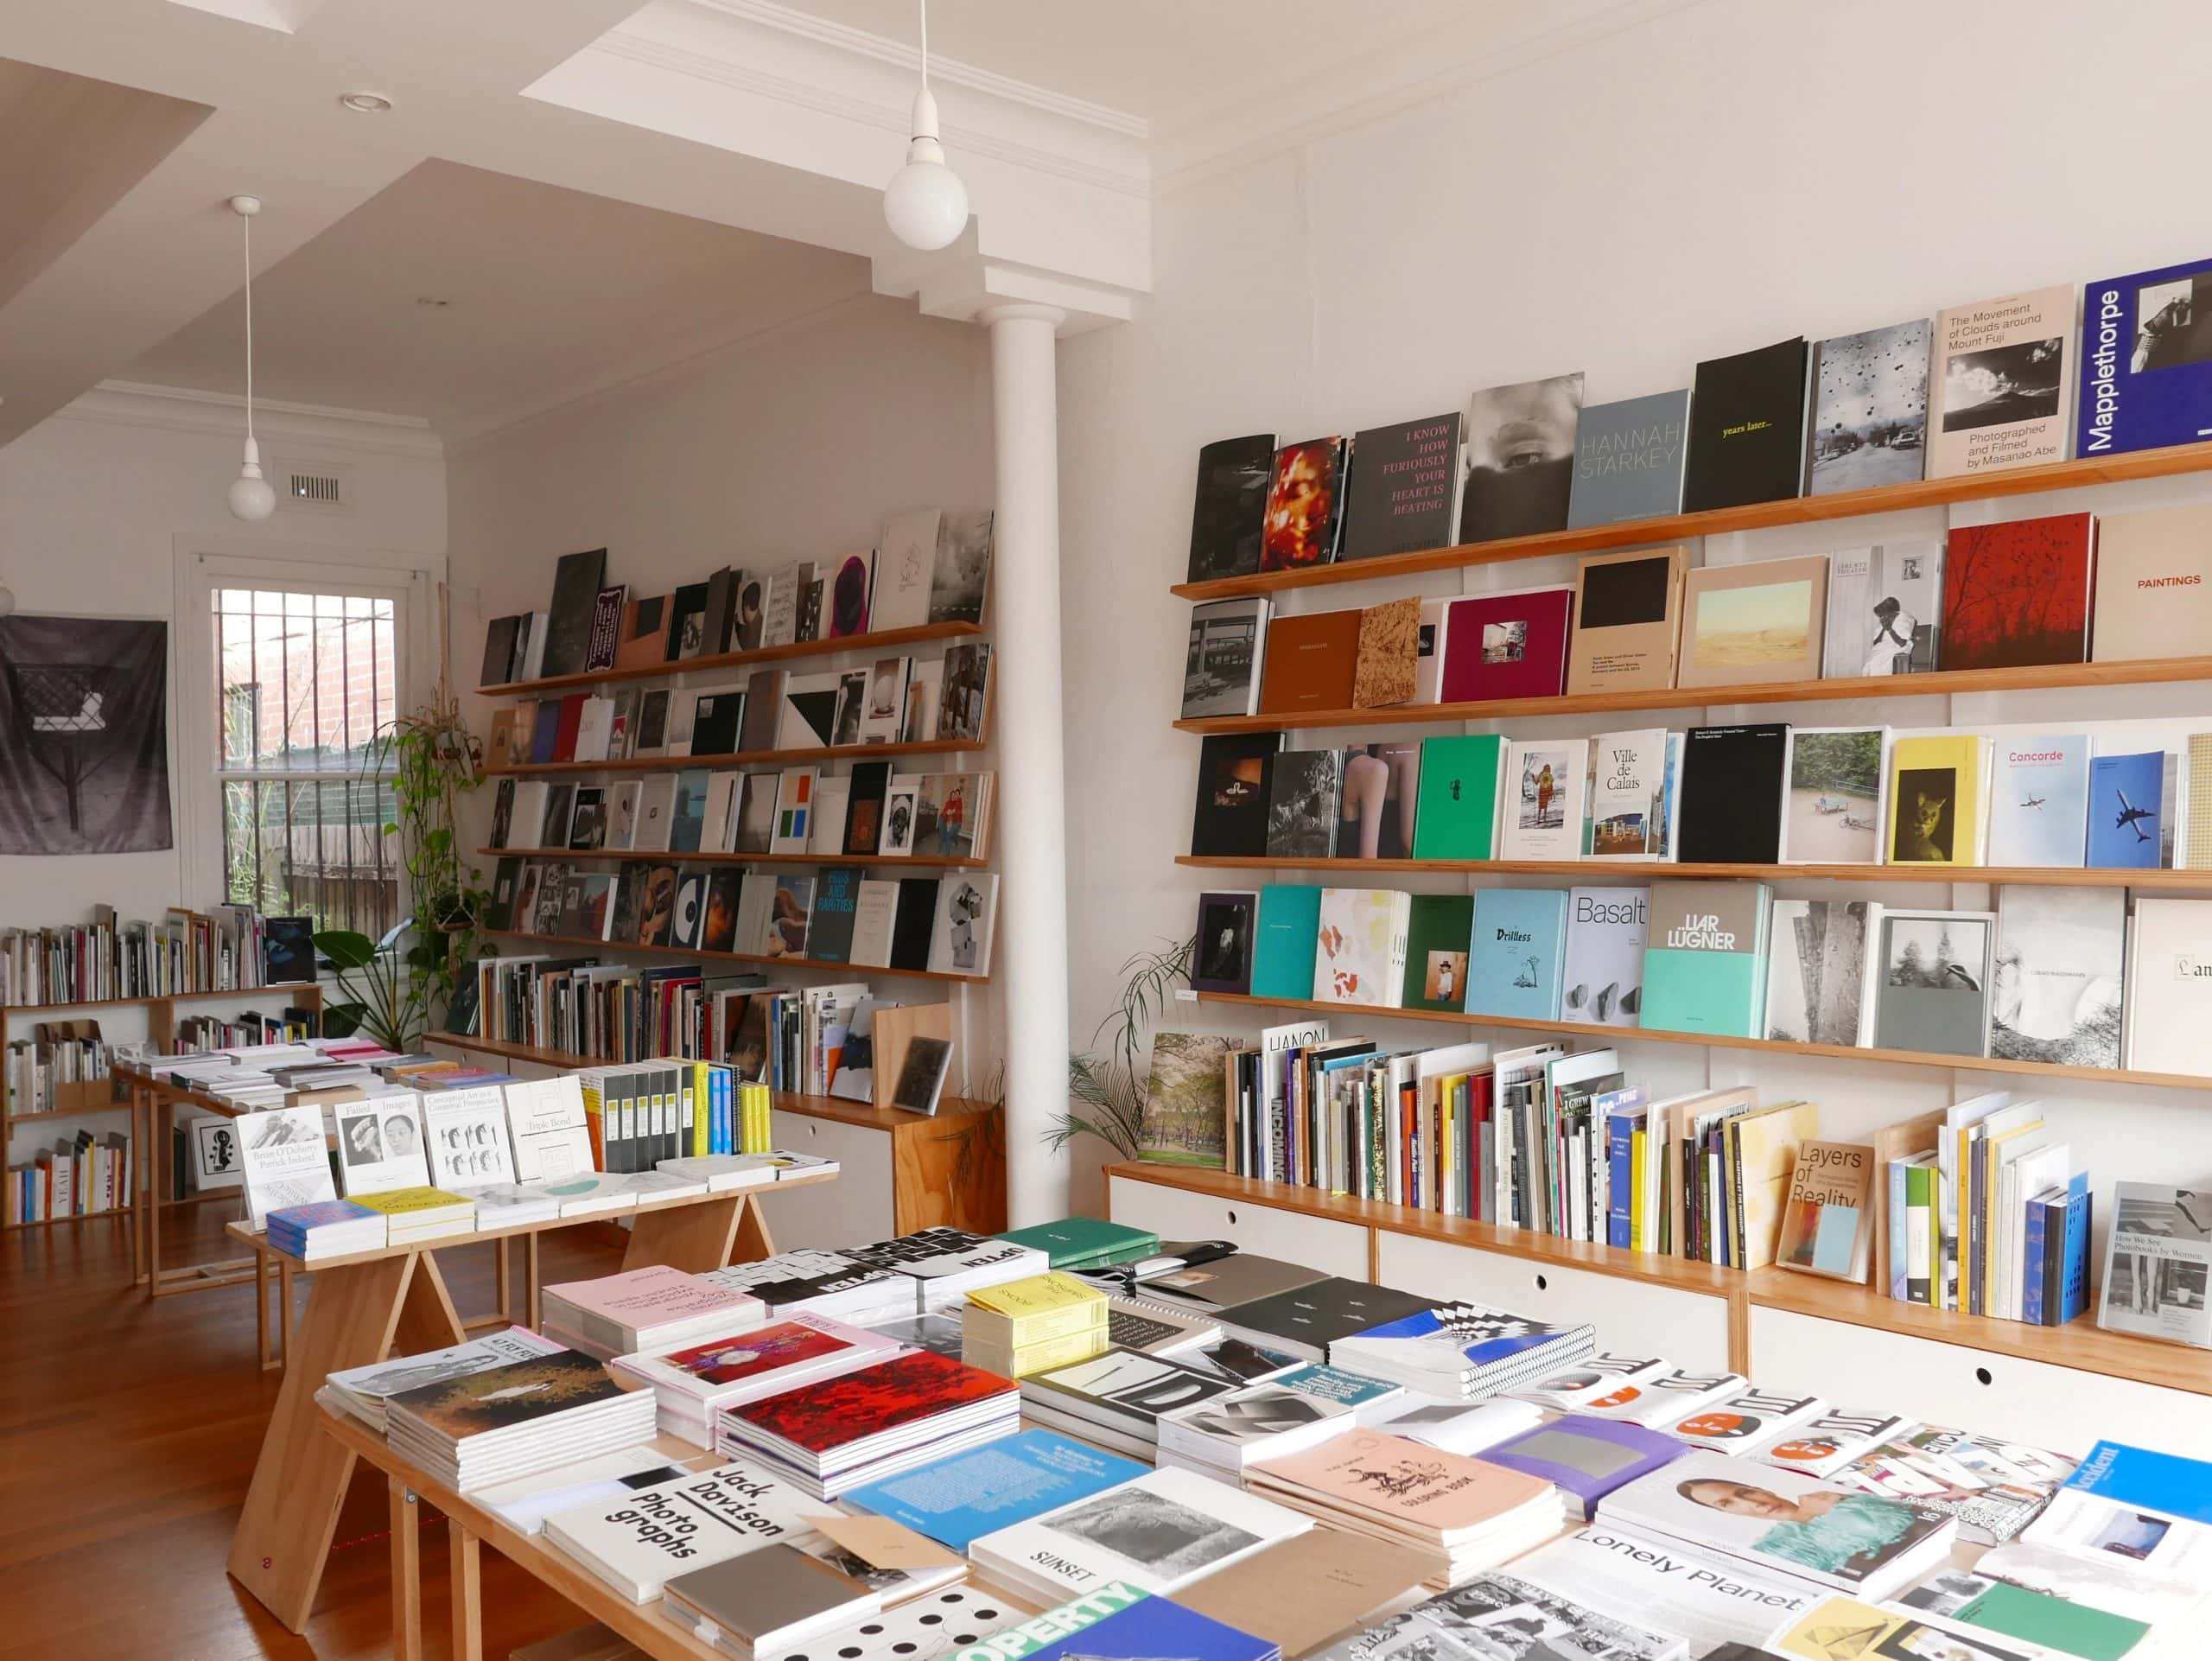 Perimeter Editions is the award-winning publishing imprint of Melbourne-based bookstore Perimeter Books and distribution house Perimeter Distribution.